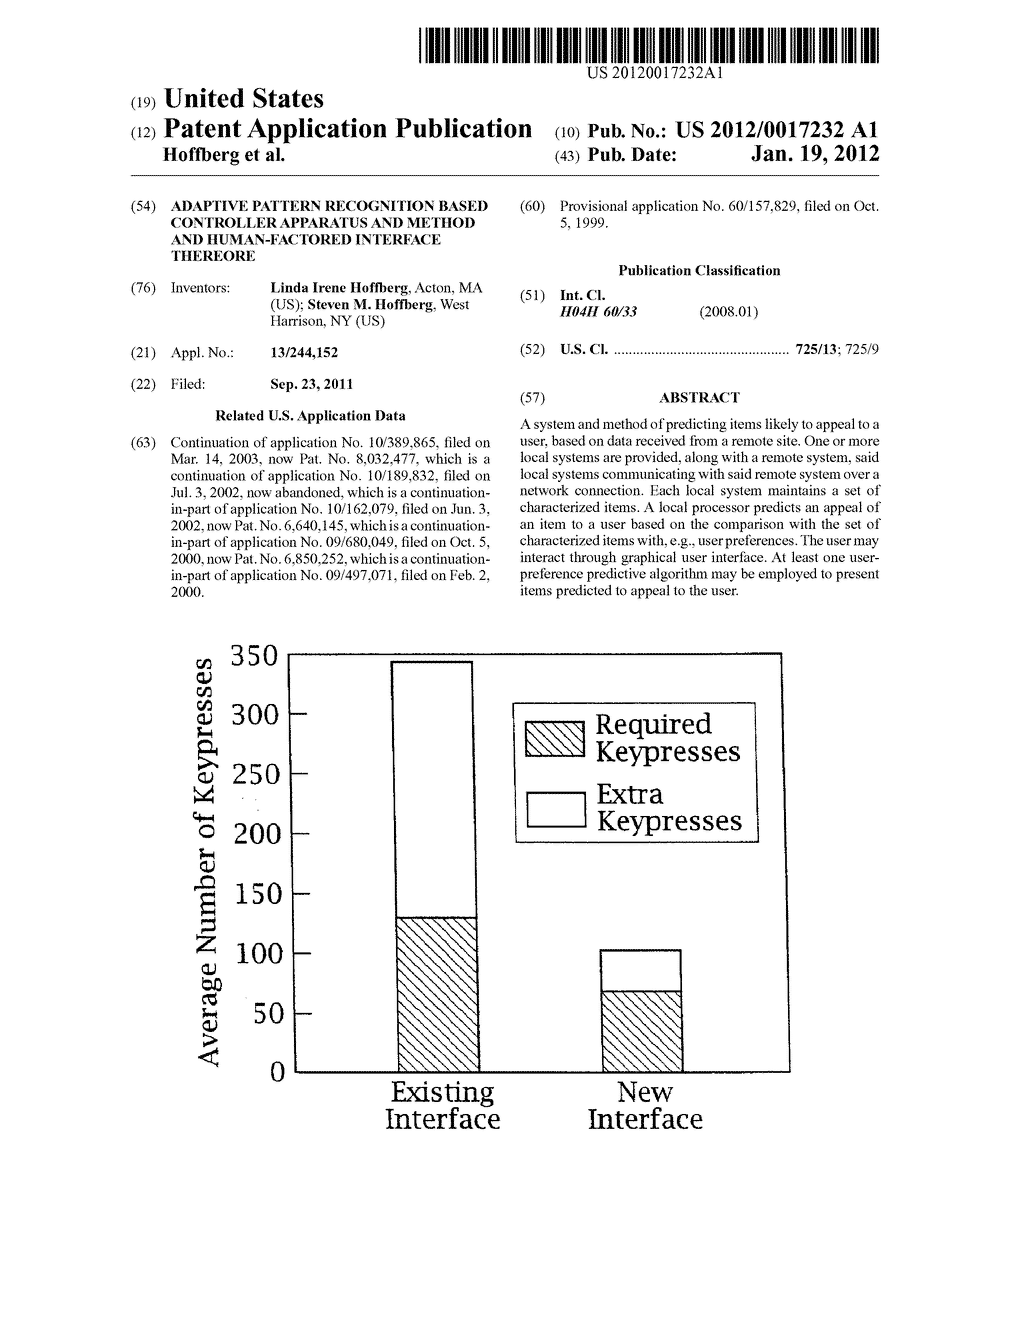 ADAPTIVE PATTERN RECOGNITION BASED CONTROLLER APPARATUS AND METHOD AND     HUMAN-FACTORED INTERFACE THEREORE - diagram, schematic, and image 01